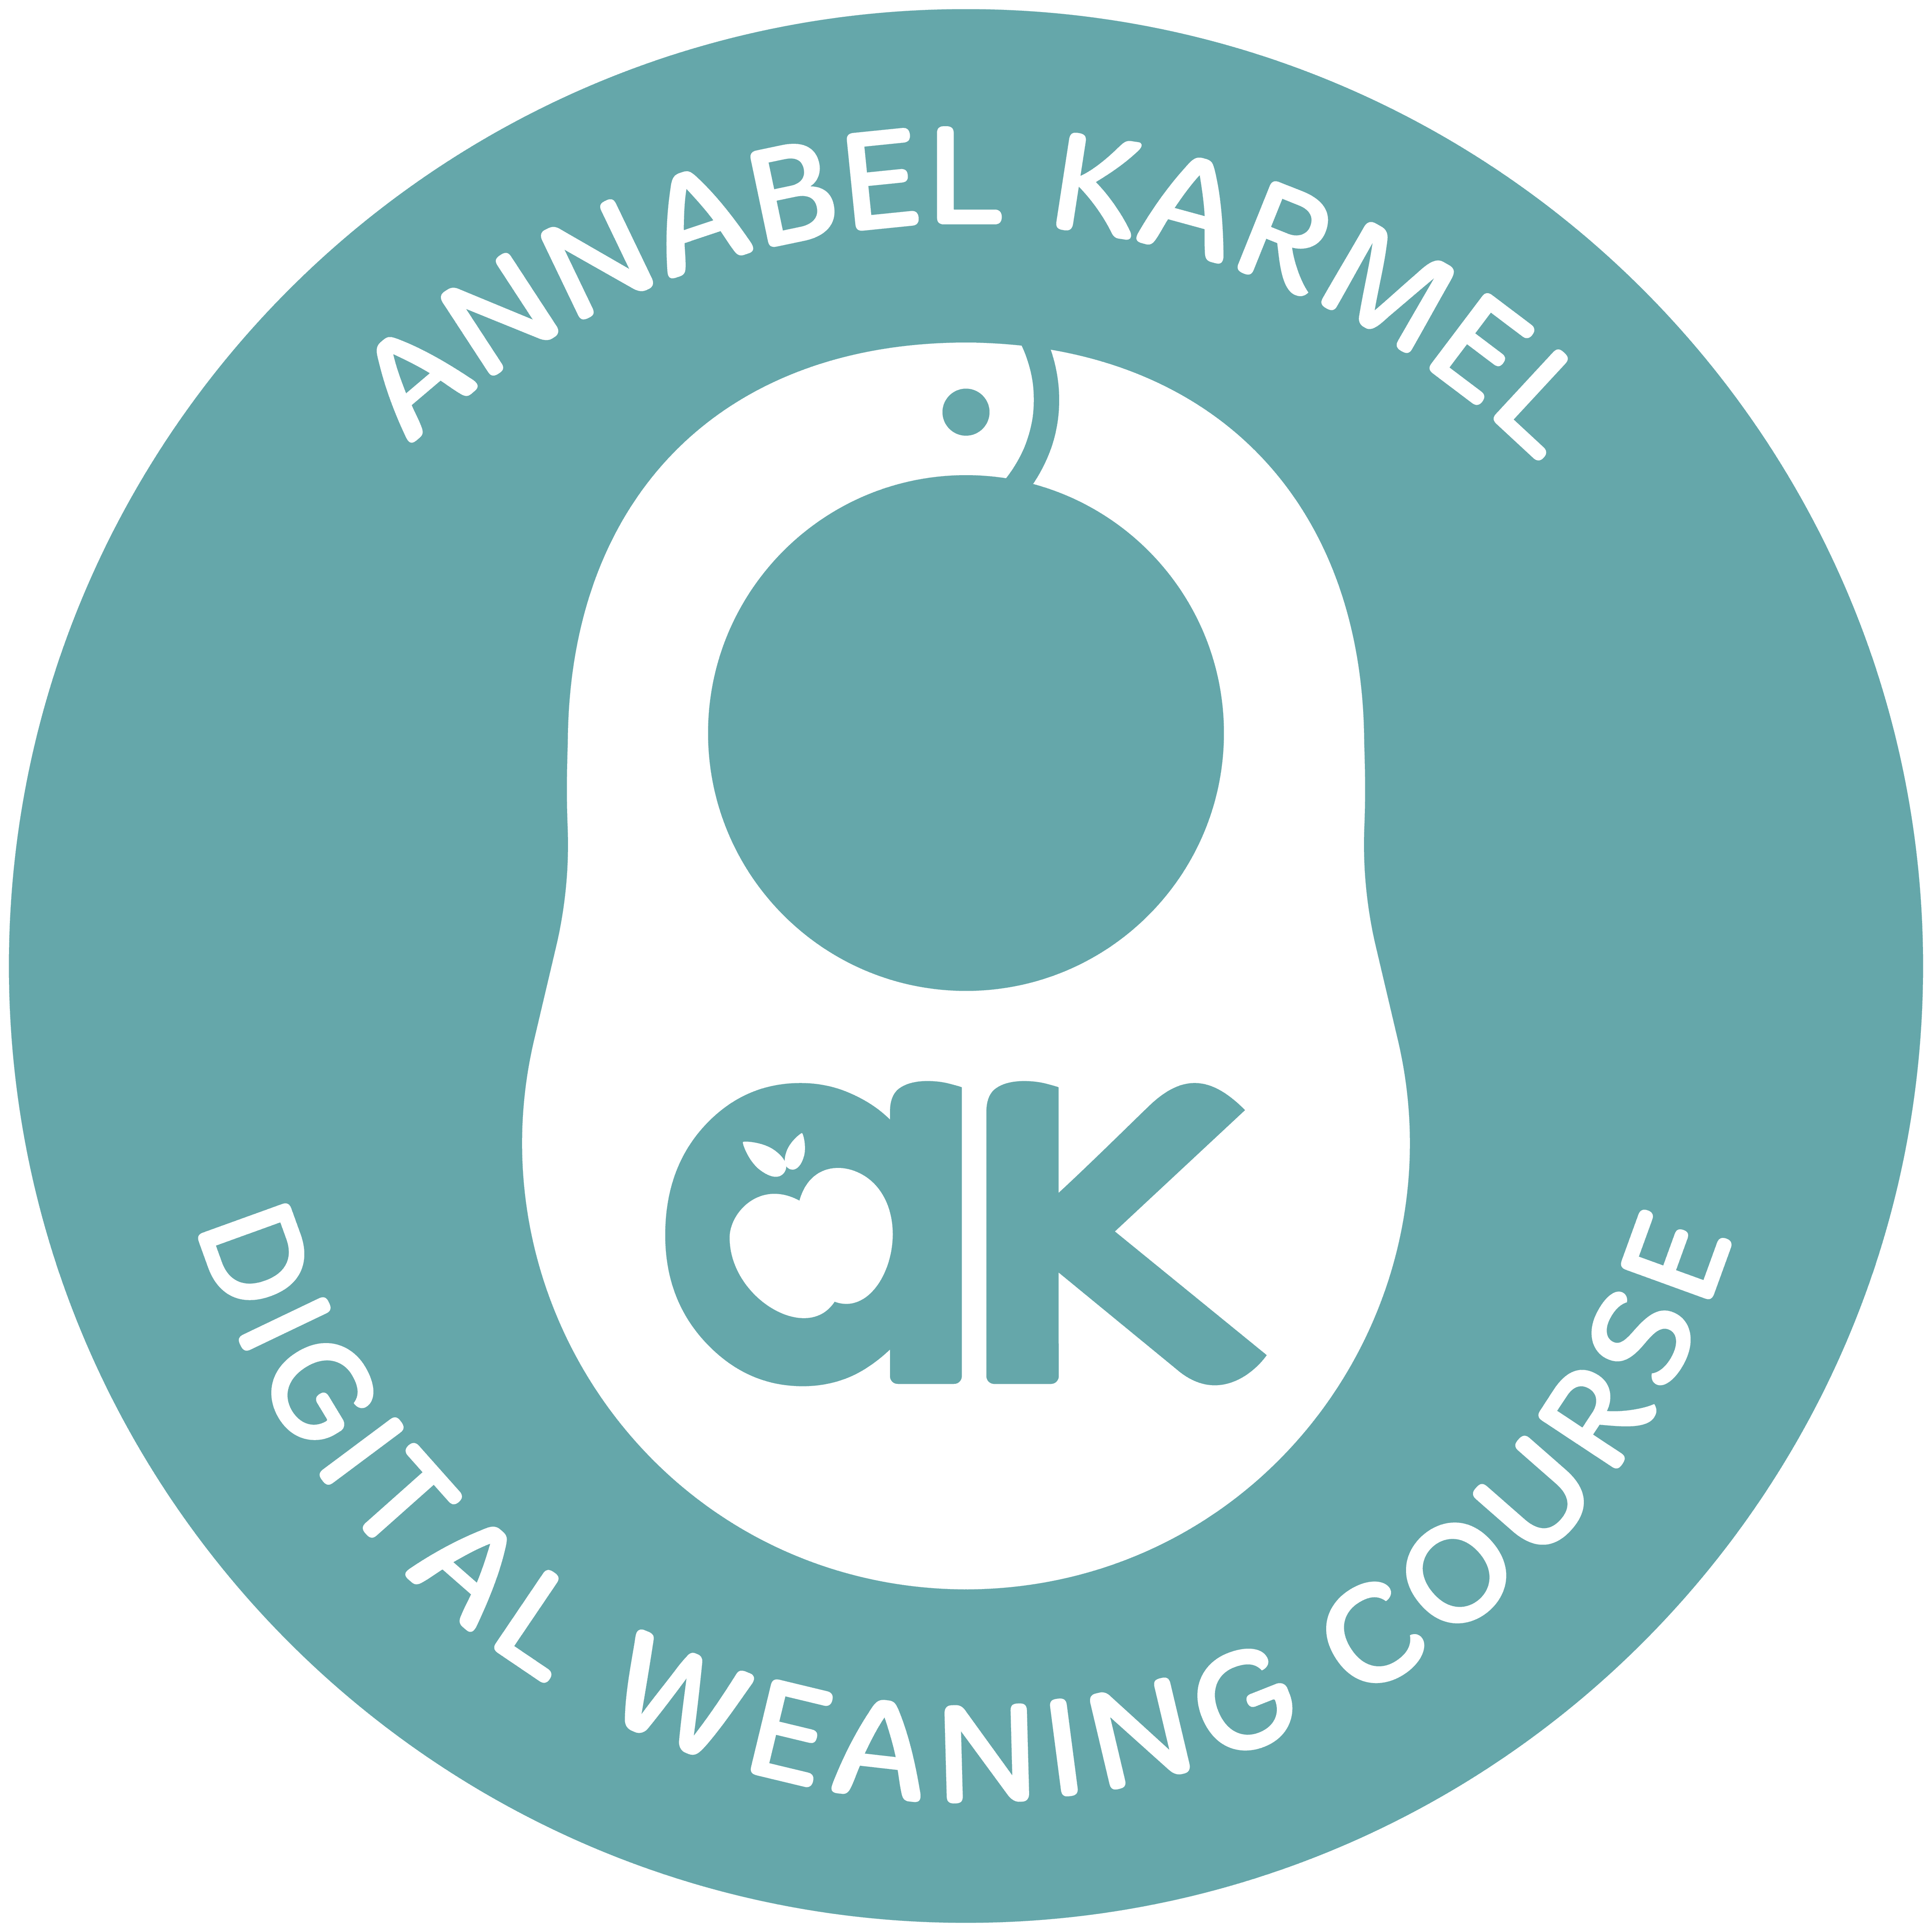 Annabel Karmel's Baby Weaning Course